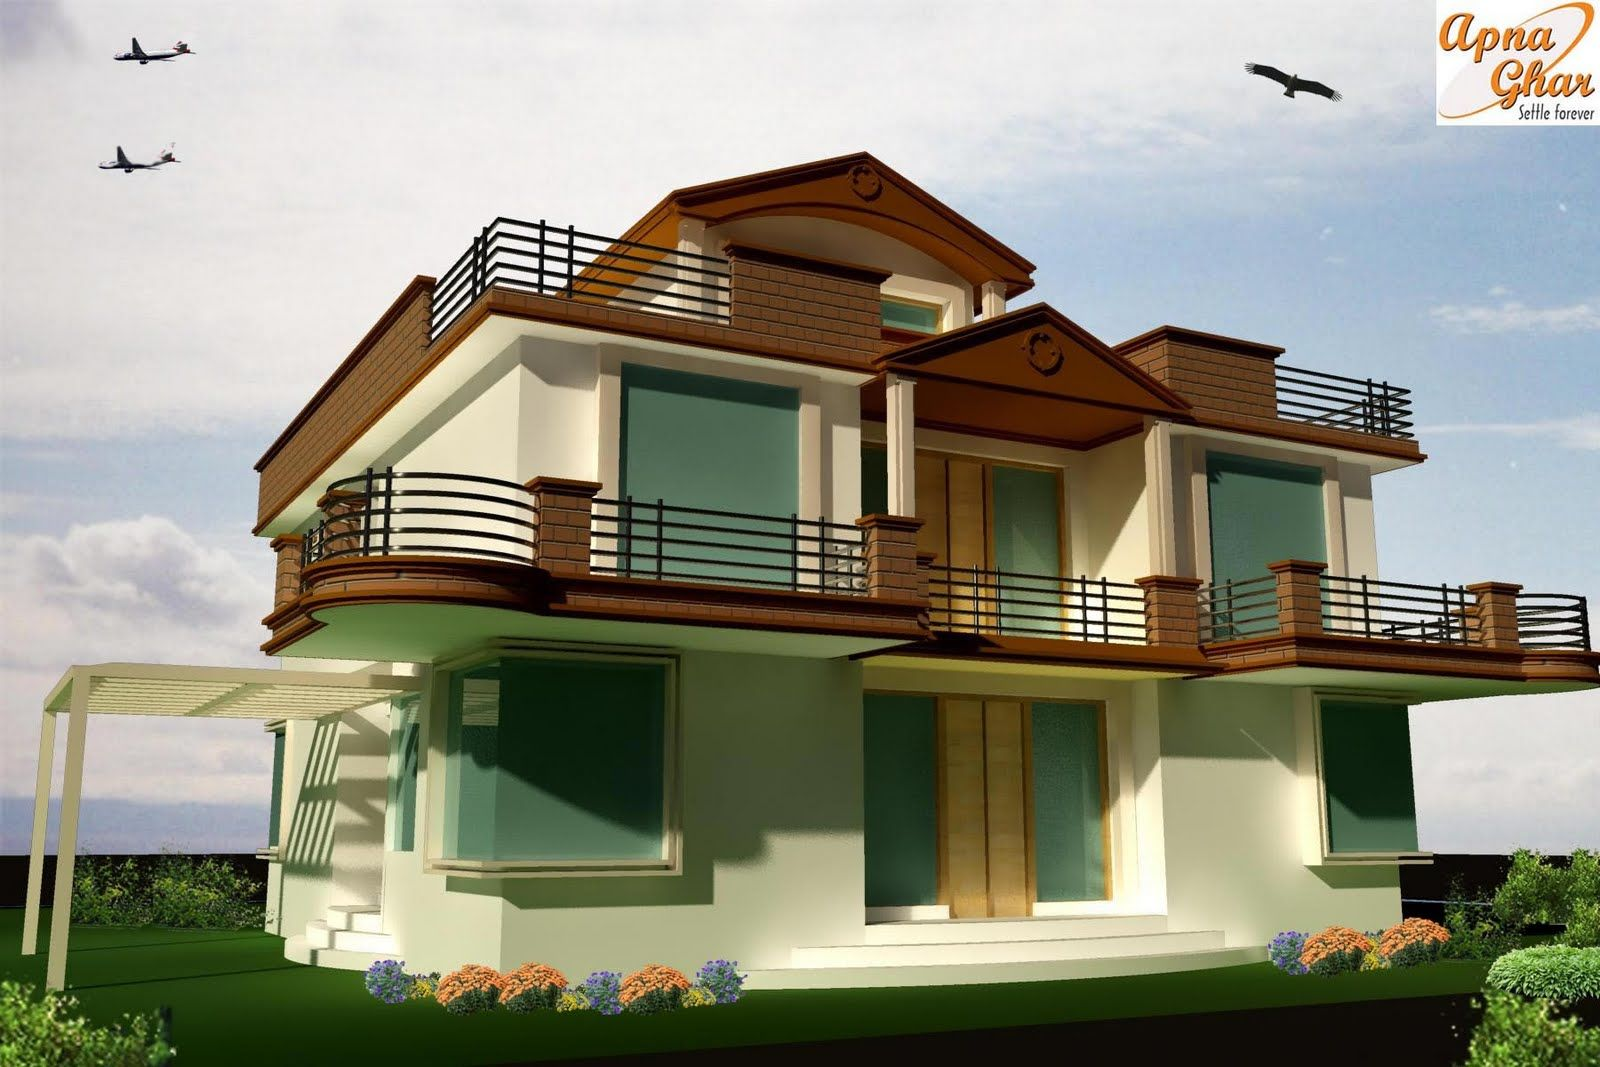 Architectural designs modern architectural house plans for Modern house architecture